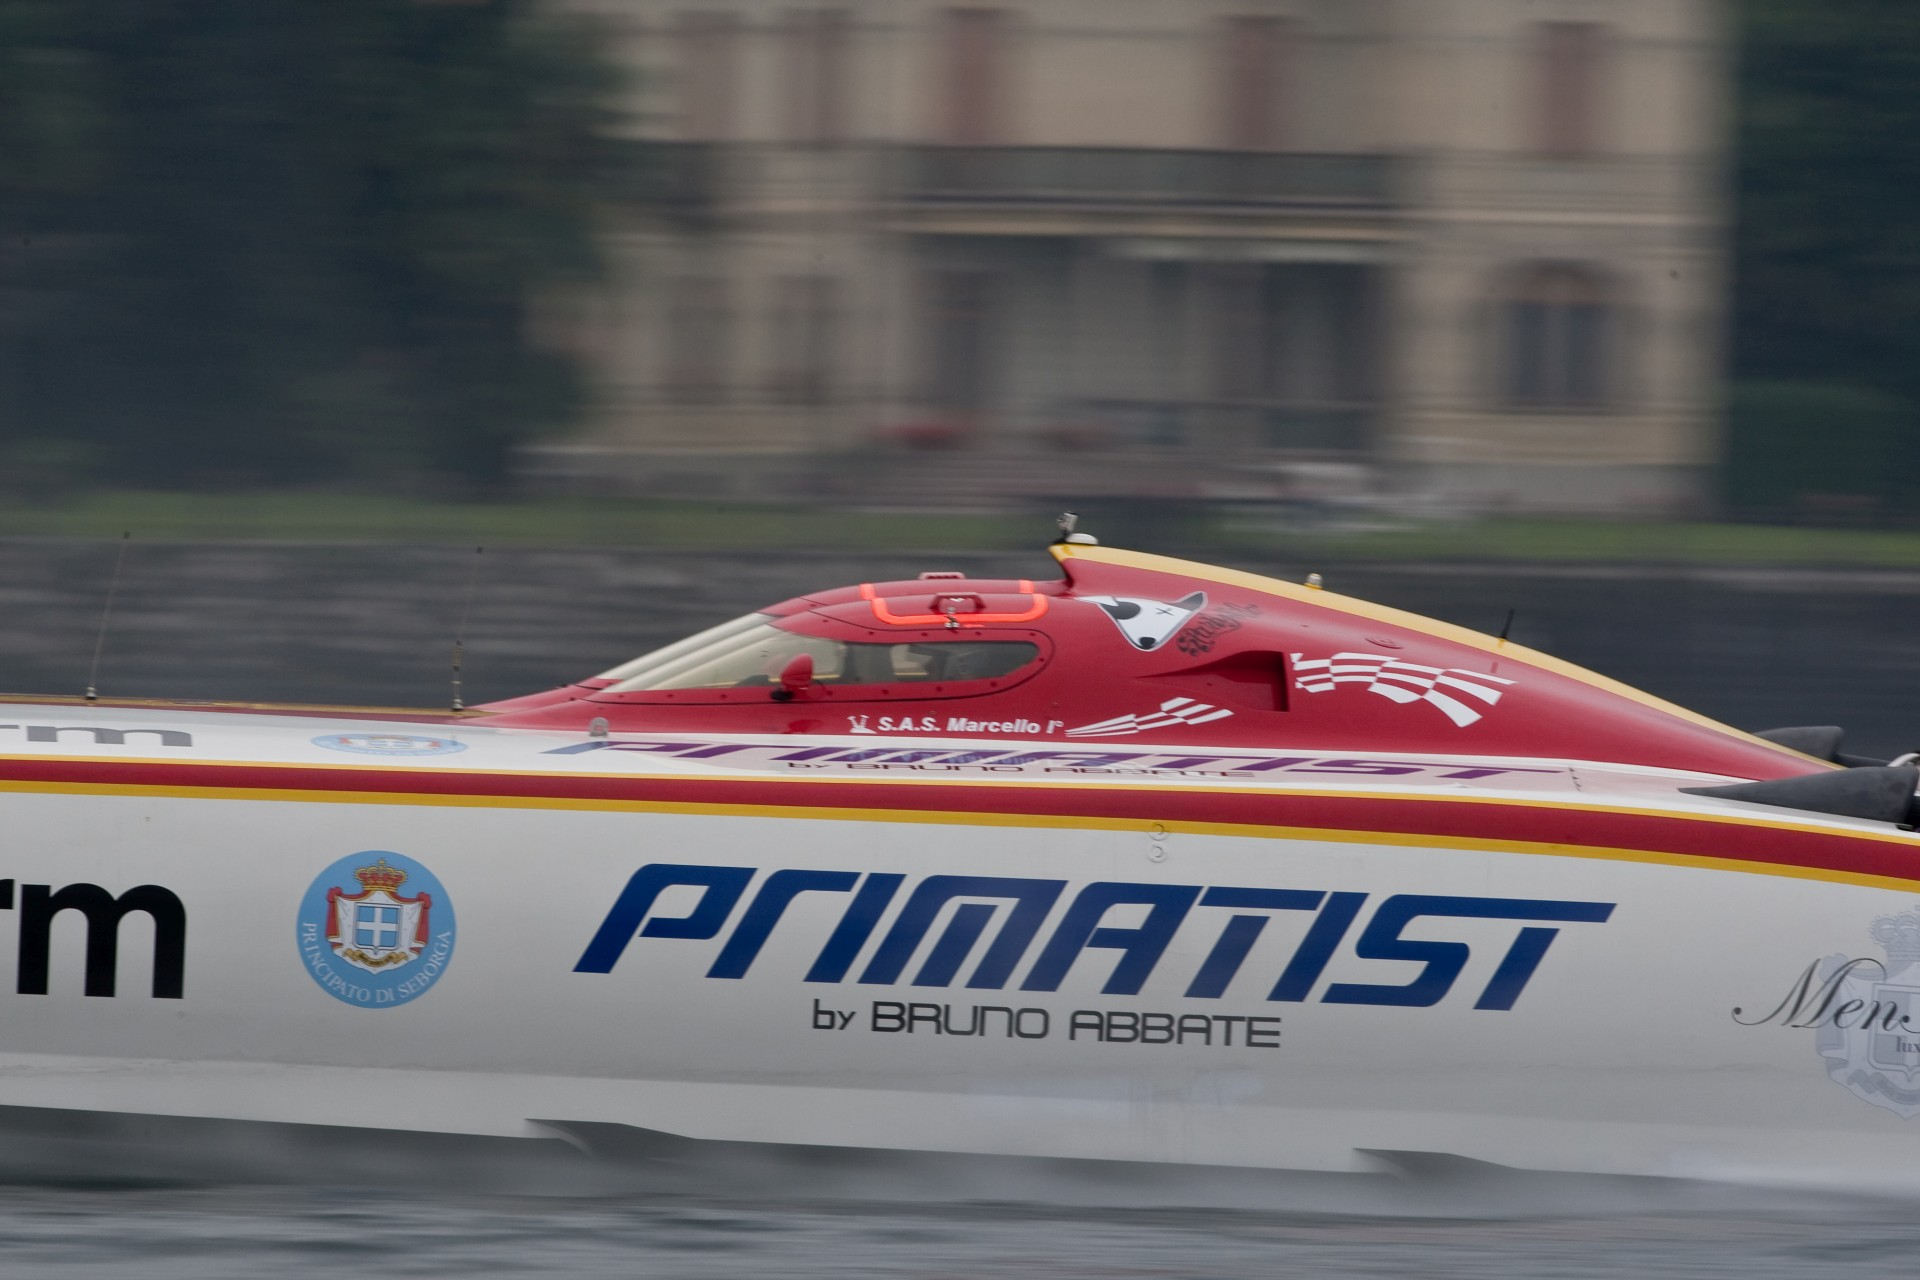 Stresa - 01/10/2010 Class-1 World Powerboats Championship 2010 Stresa Round 4 Photo Simon Palfrader©